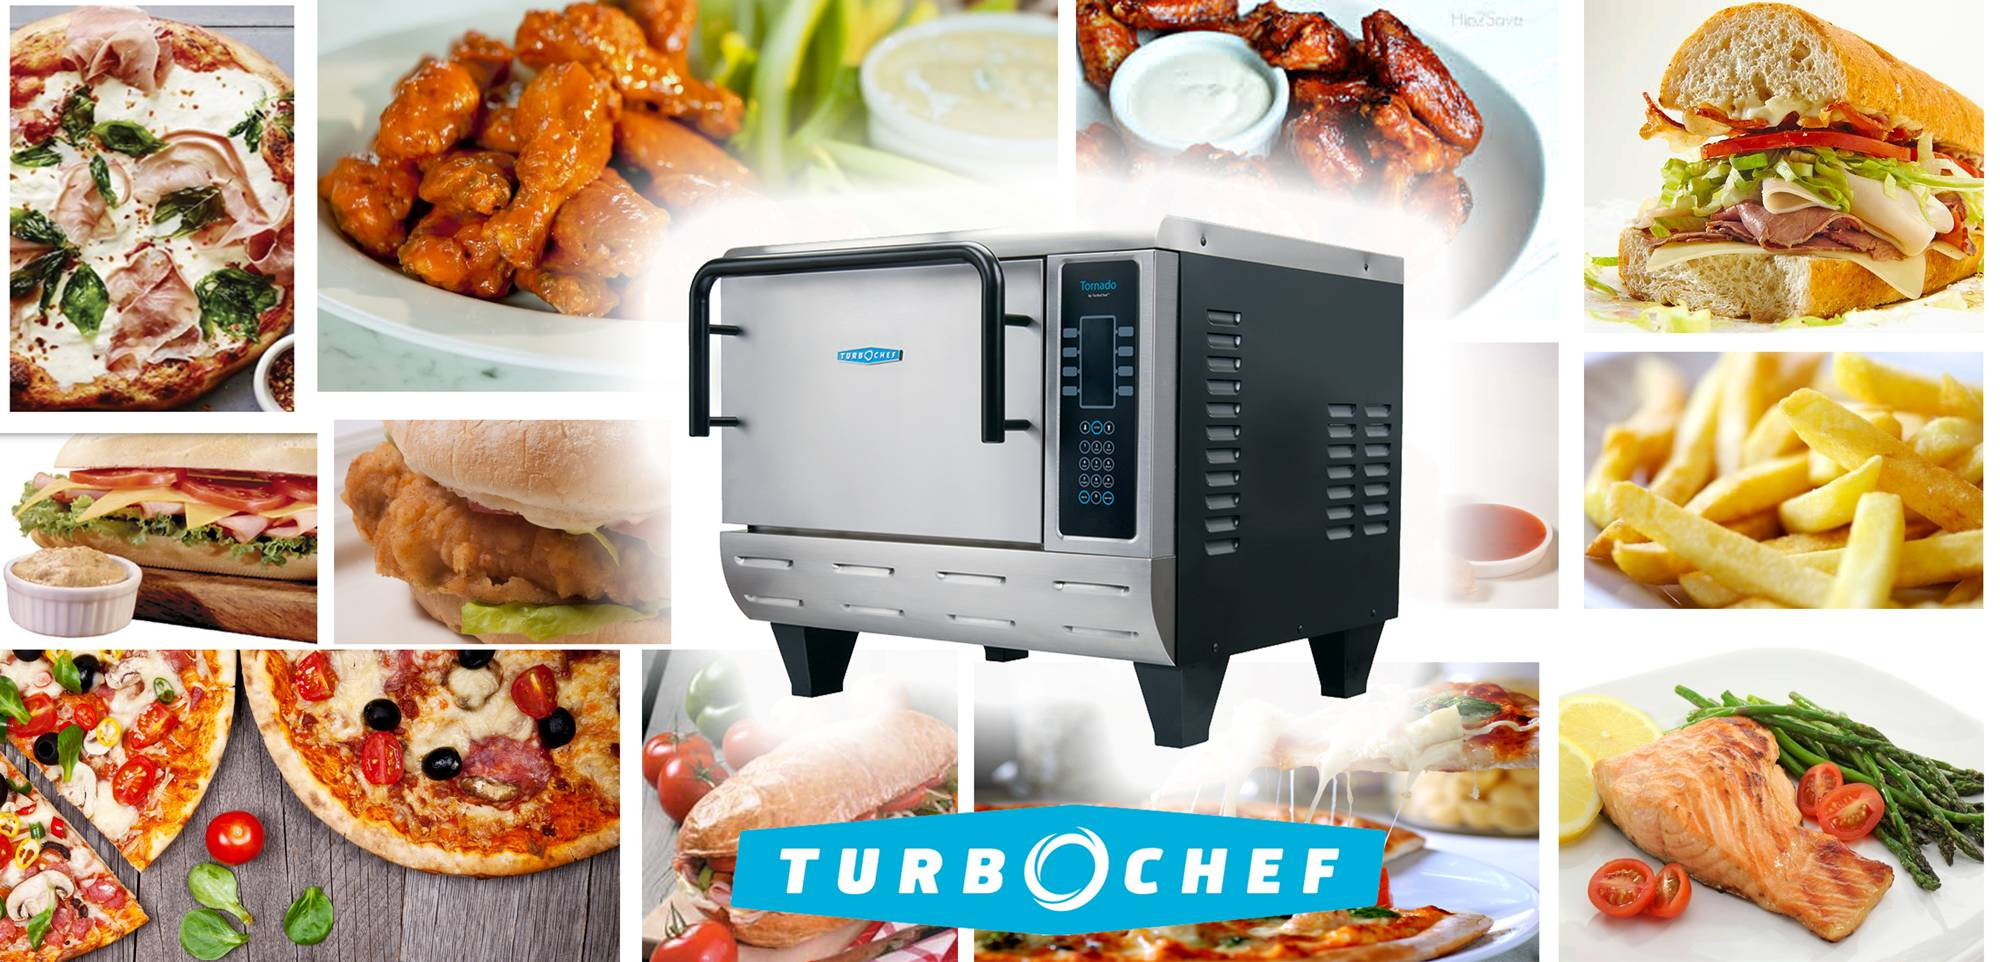 Martin Food Equipment turbochef-tornado-collage Turbochef Live Demonstrations Events